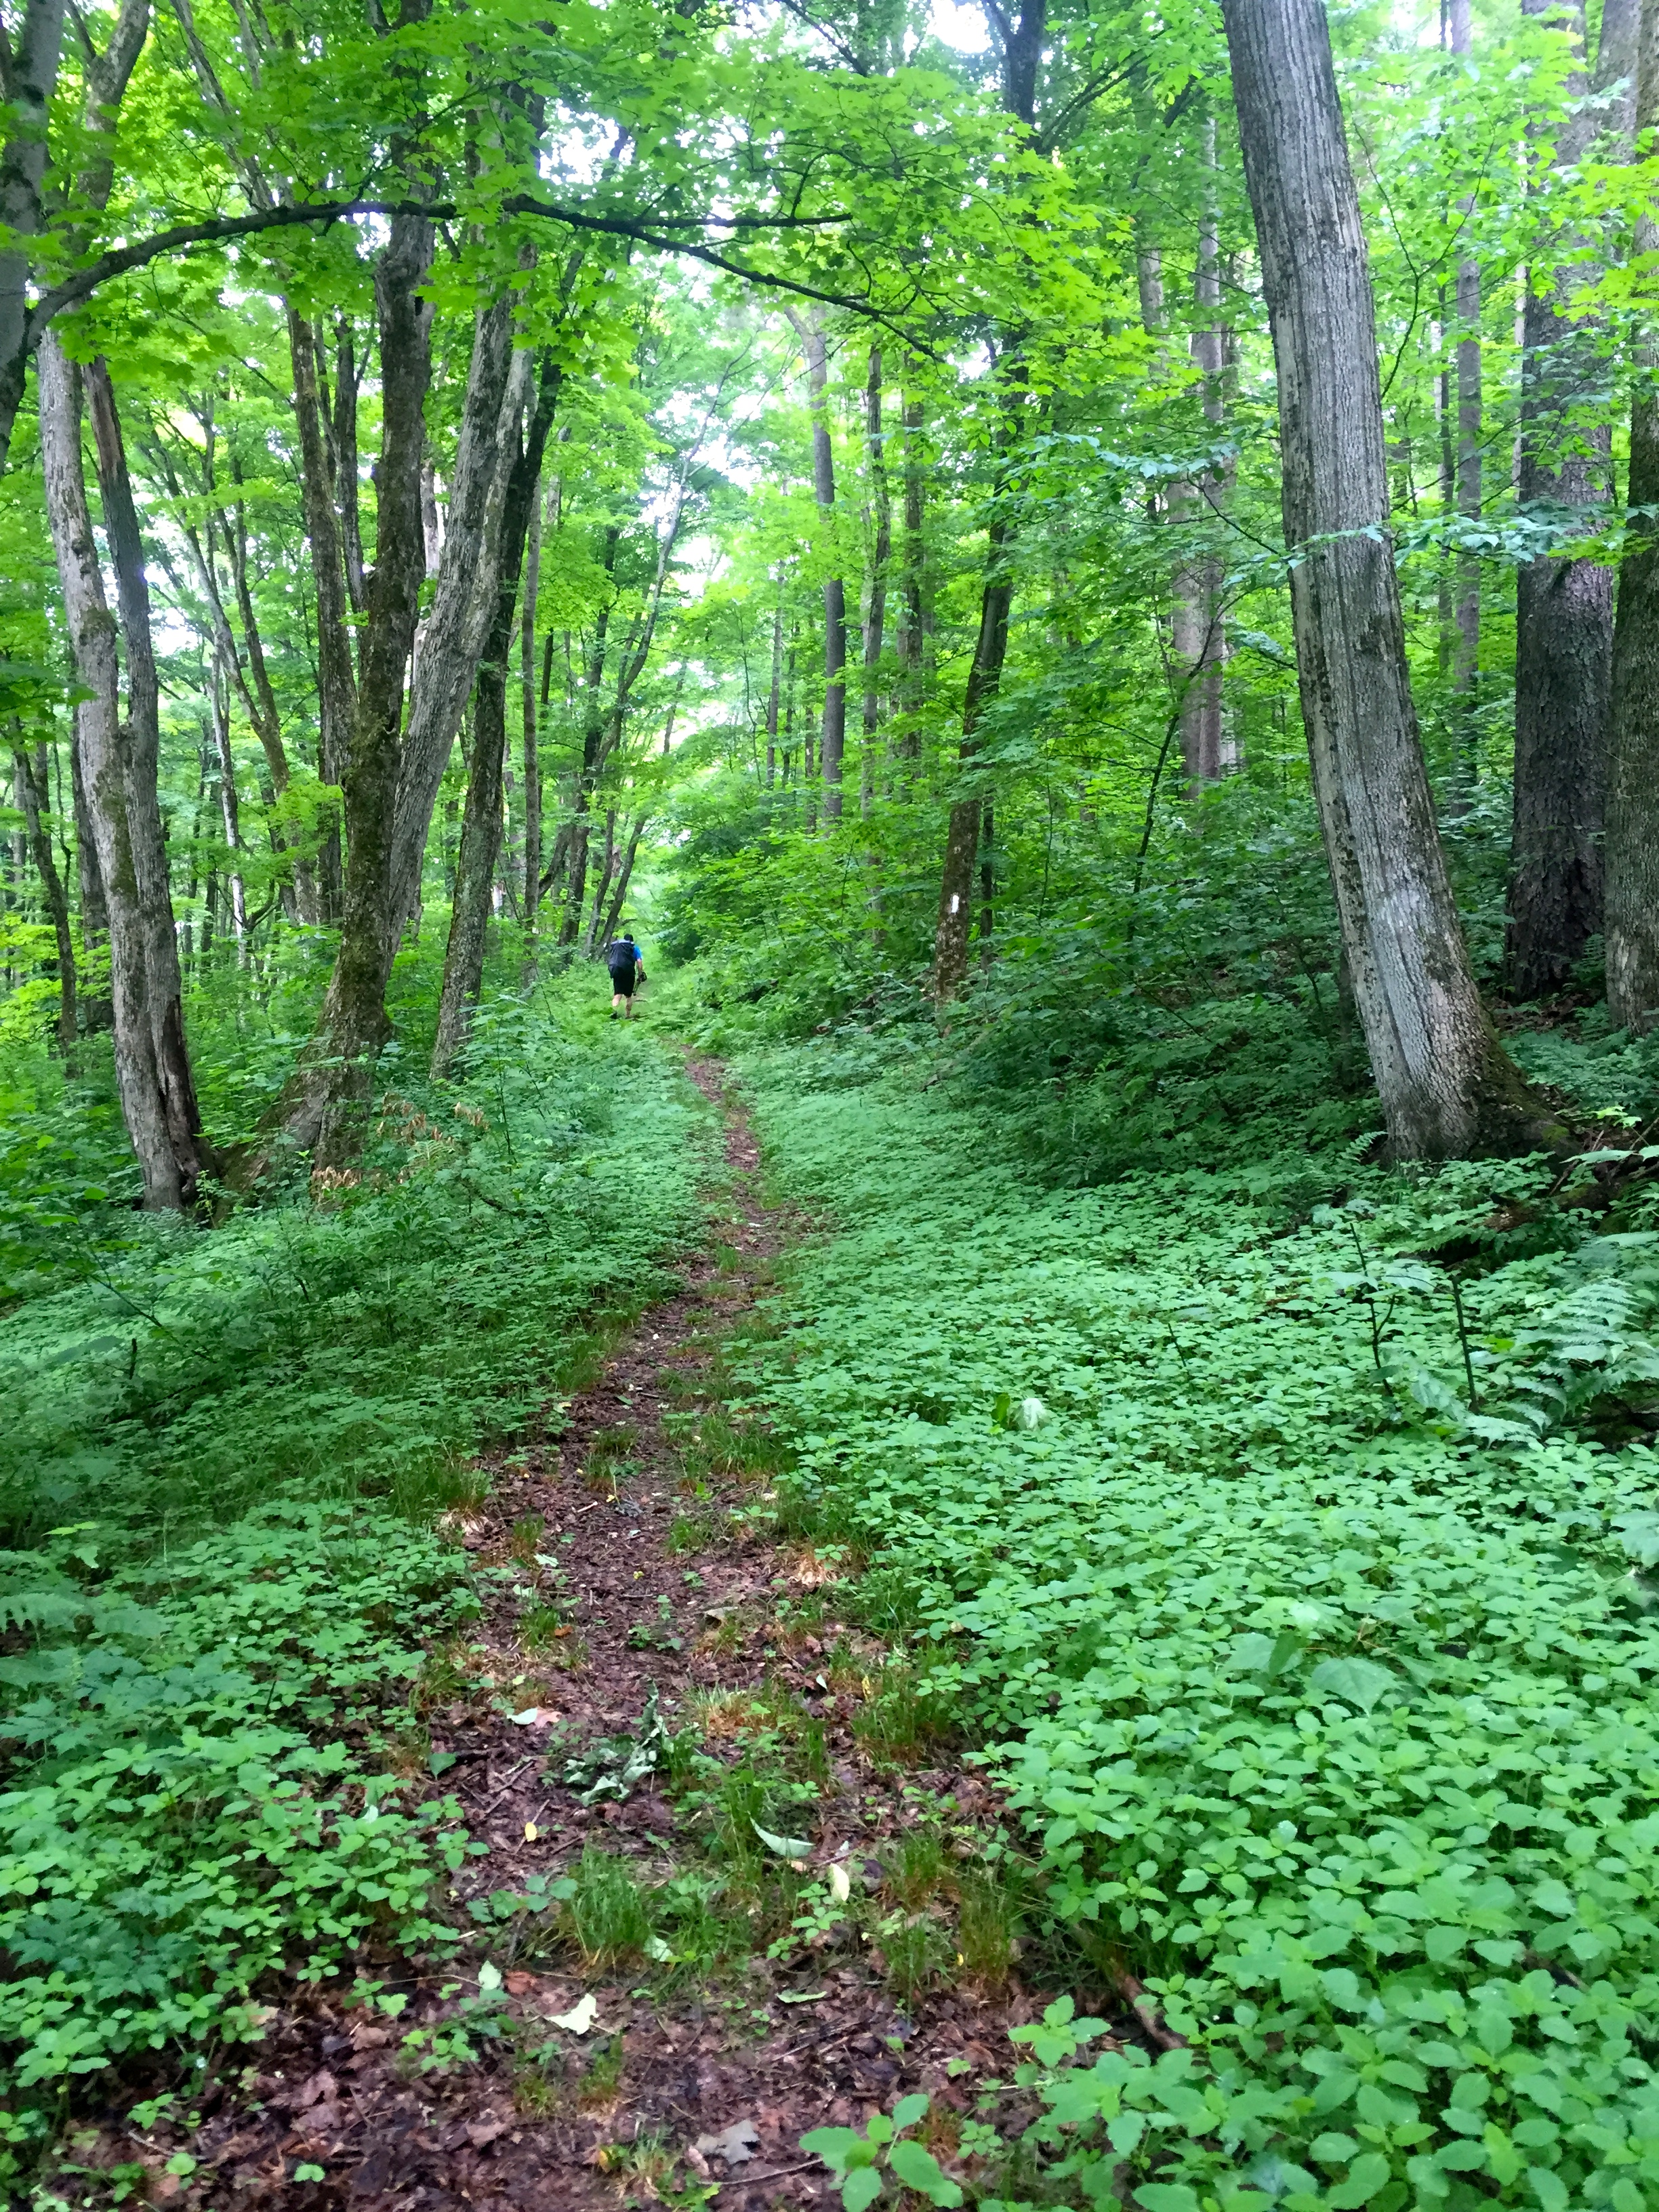 Some dry-ish portions of trail today... it sure is pretty when everything is so green!